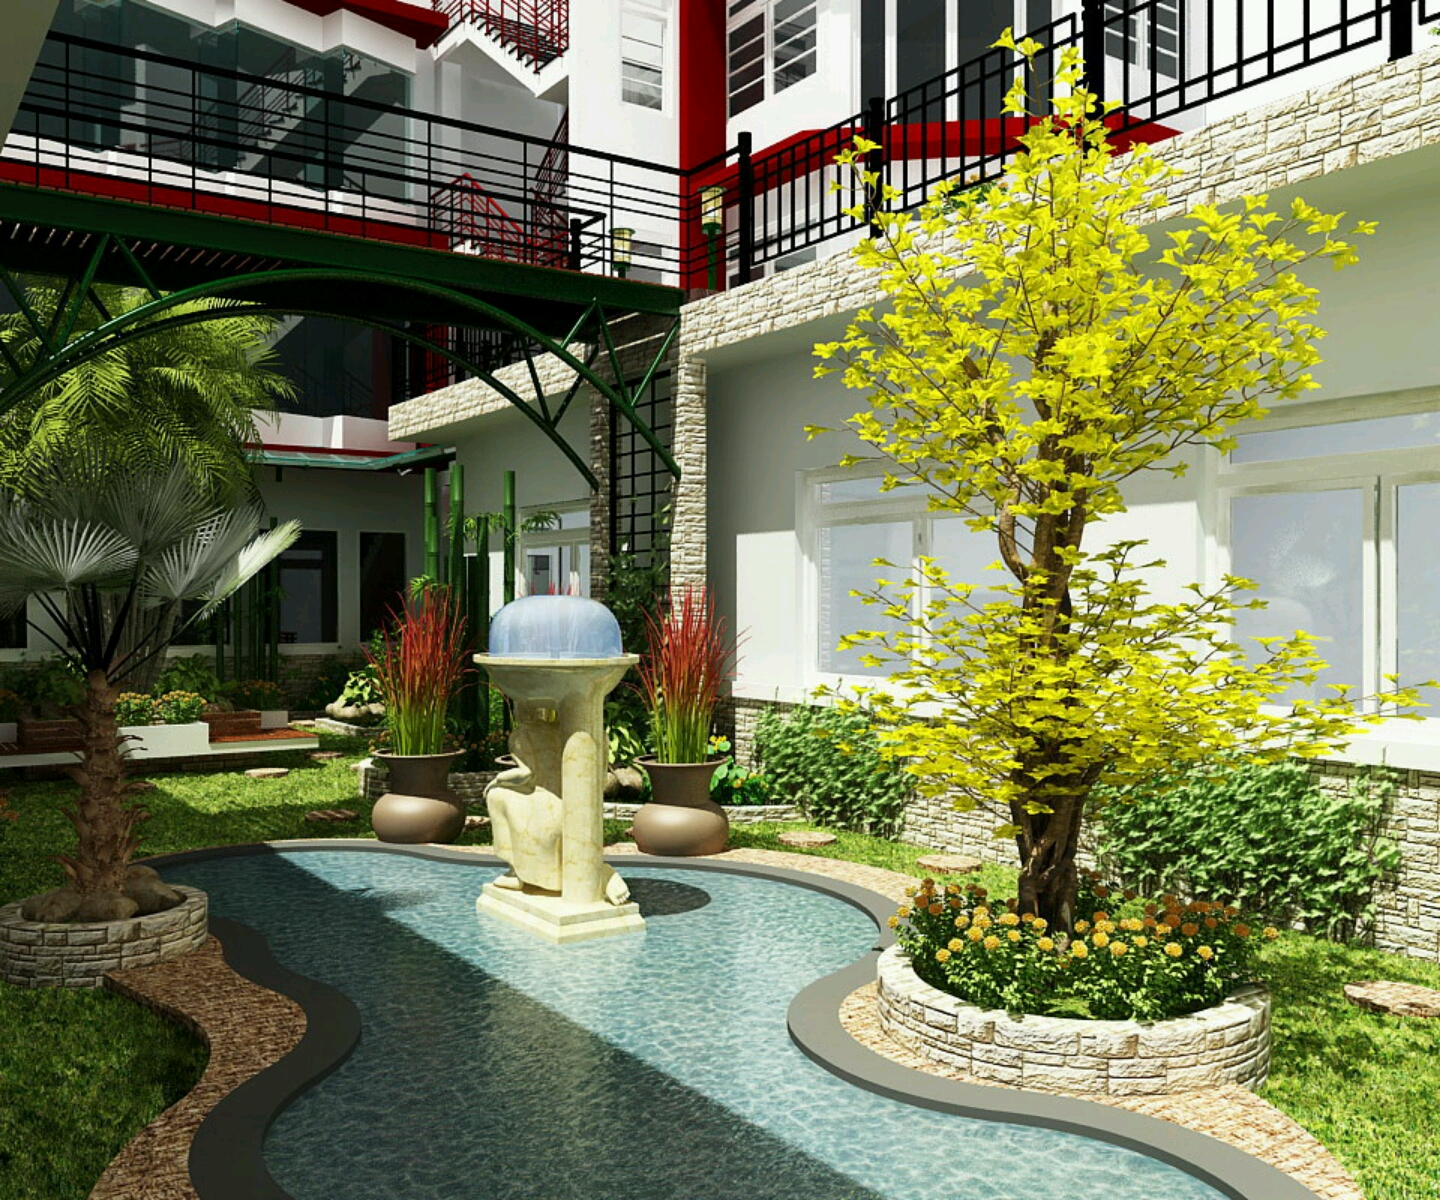 New blog here modern garden house design for House architecture design garden advice